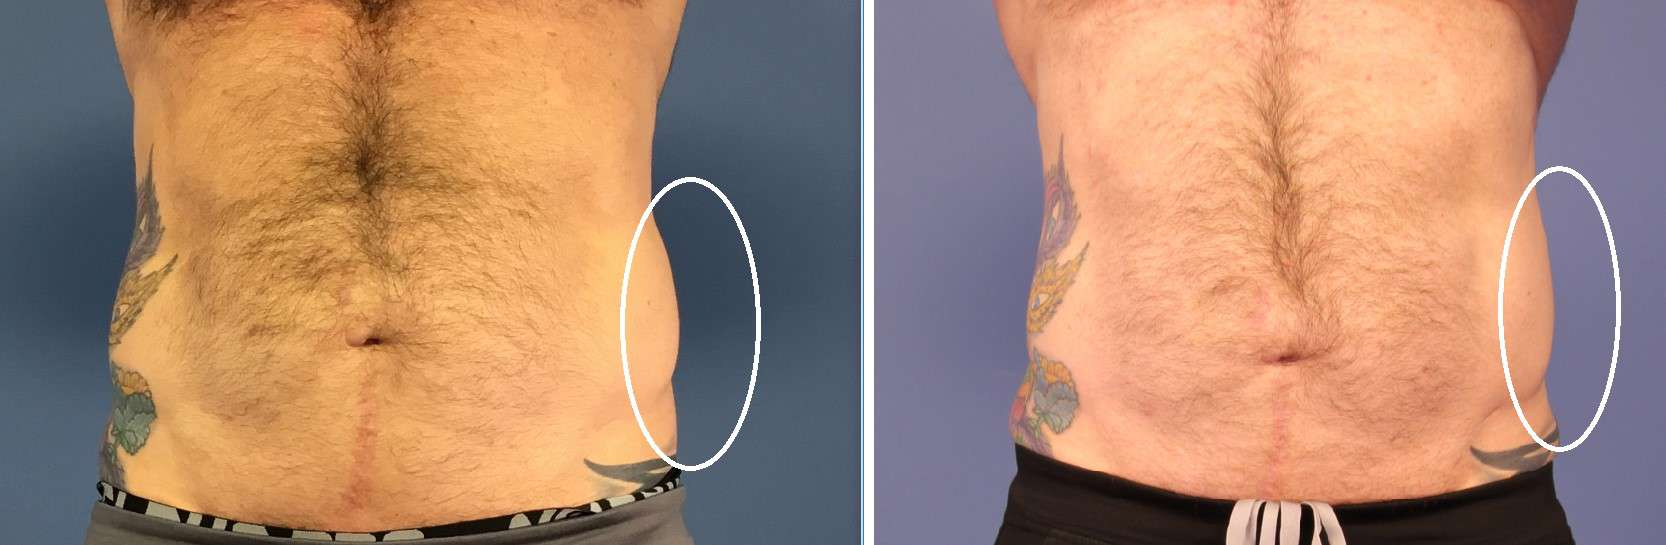 CoolSculpting for men love handles before and after